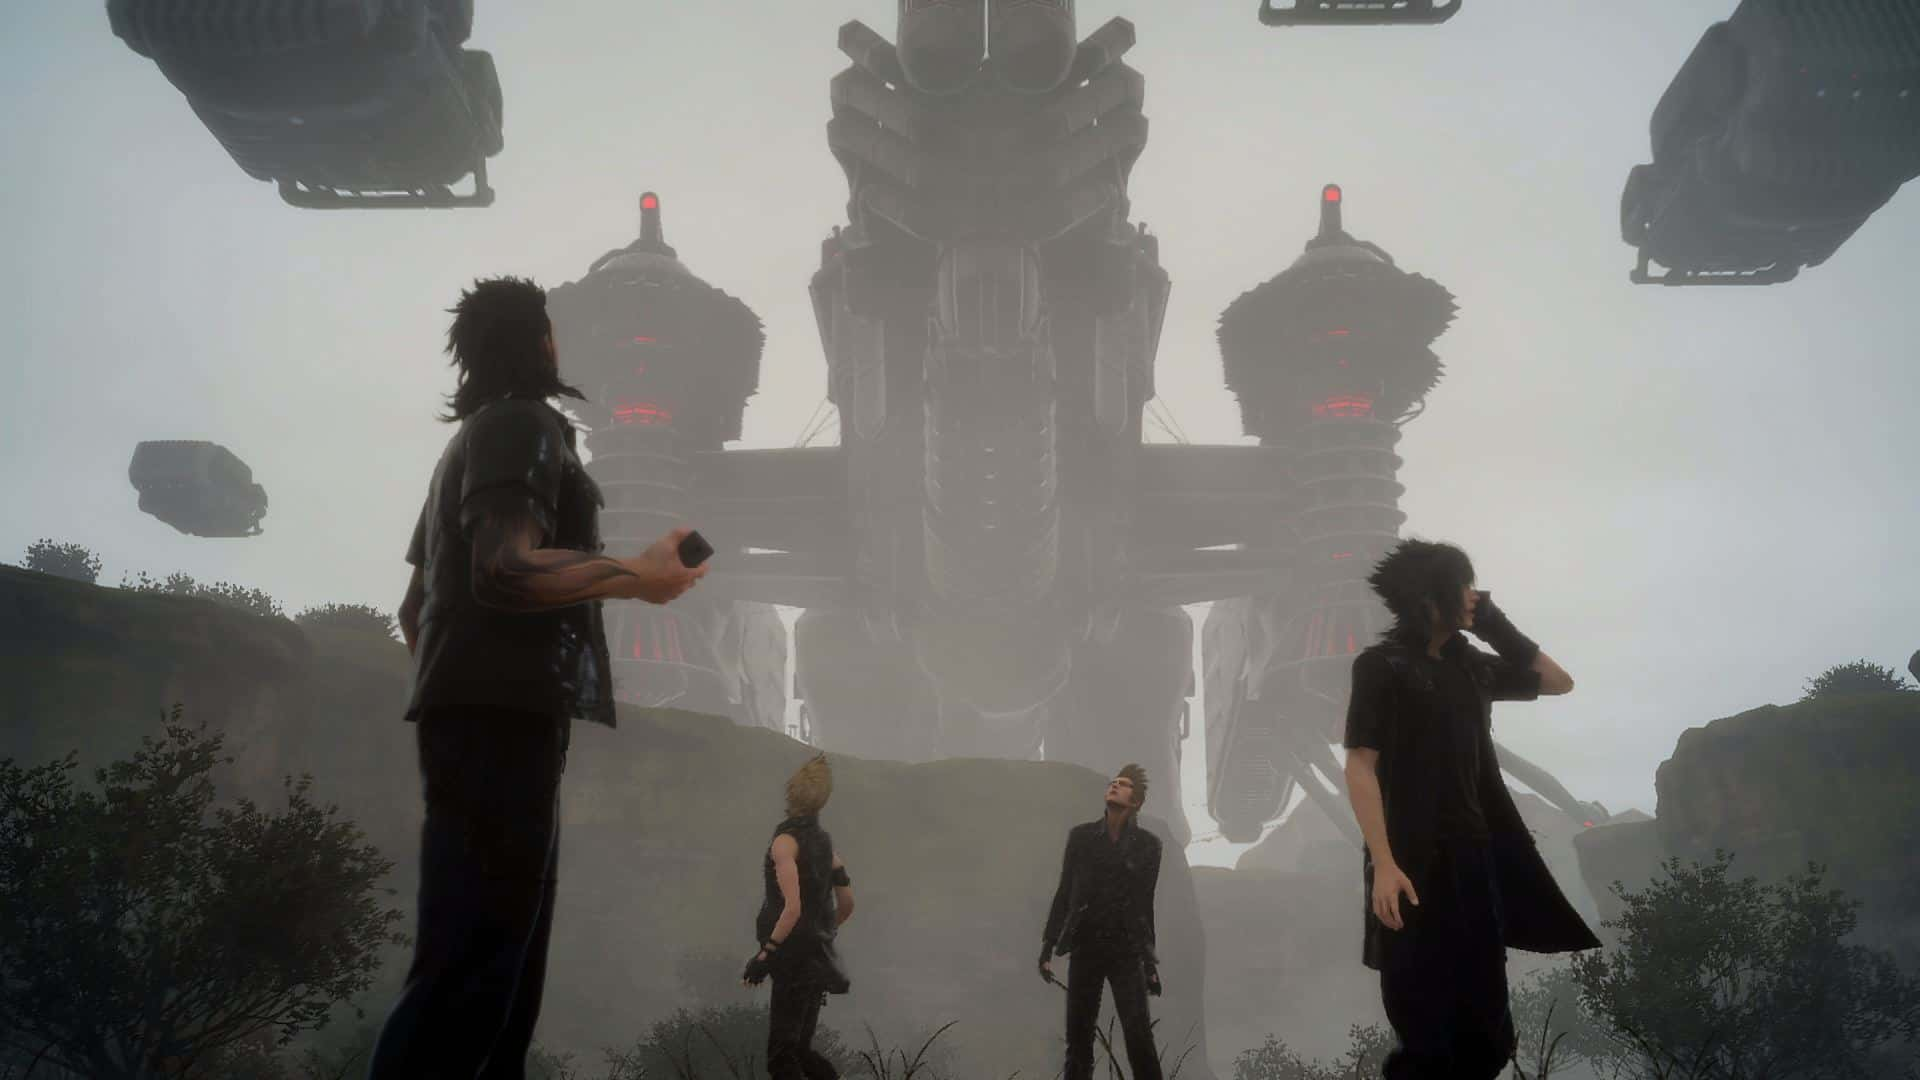 Final Fantasy XV shows a lot of promise in the early stages